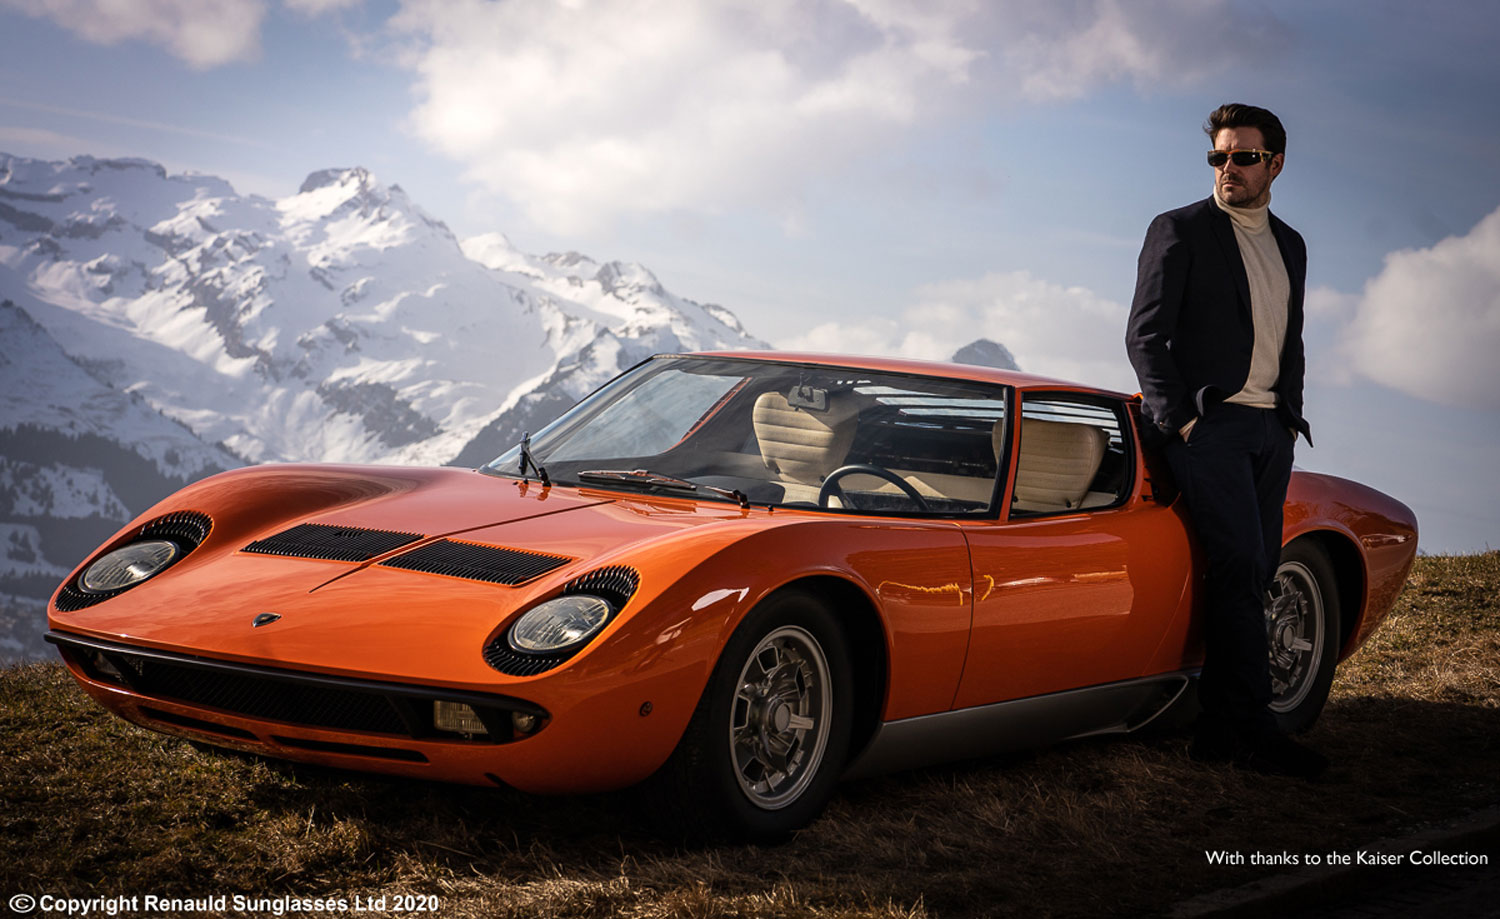 Renauld sunglasses man leaning against classic car looking cool